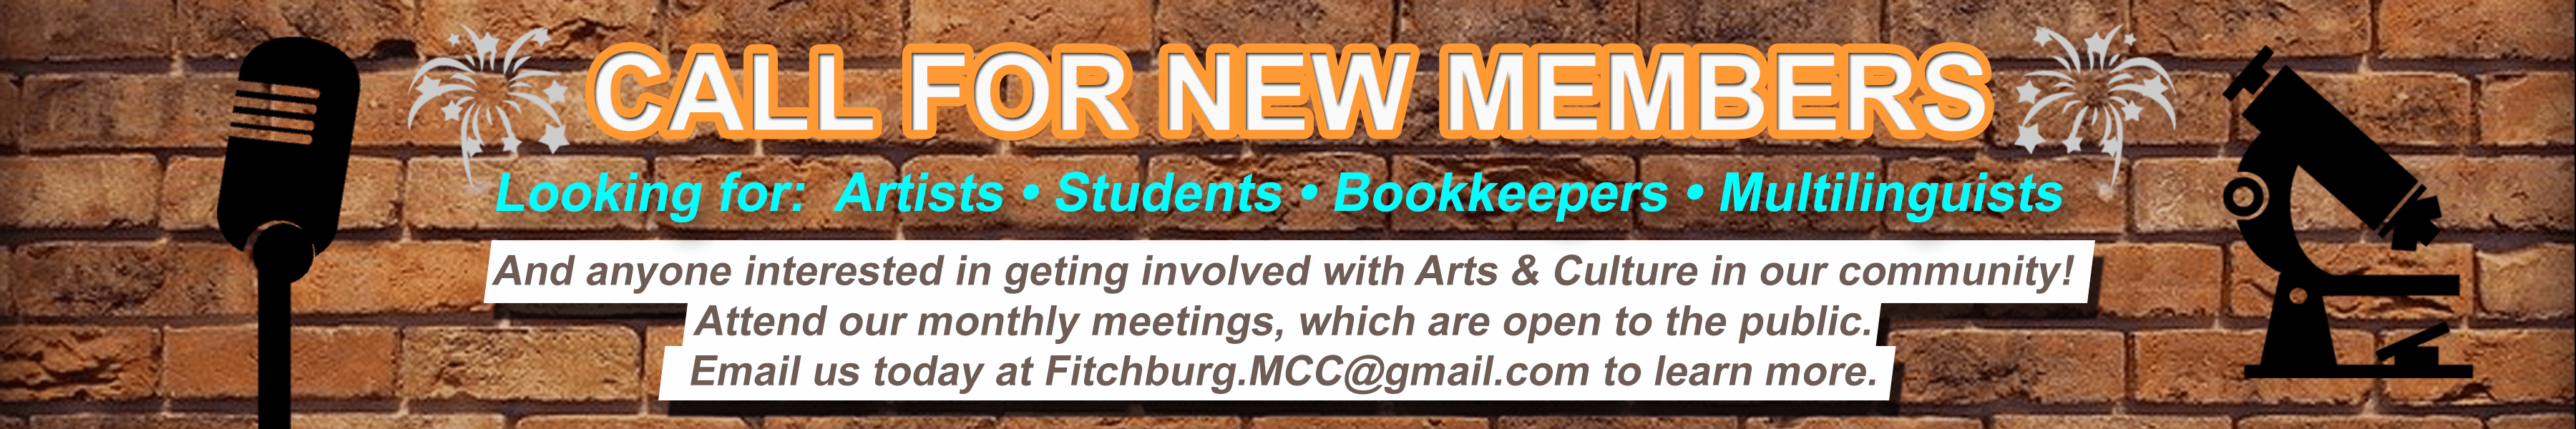 CALL FOR NEW MEMBERS! Looking for Arists, students, Bookkeepers, Multilinguists, and anyone interested in getting involved with Arts & Culture in our community! Attend our monthly meetings, which are open to the public. Email us today at Fitchburg.MCC@gmail.com to learn more.